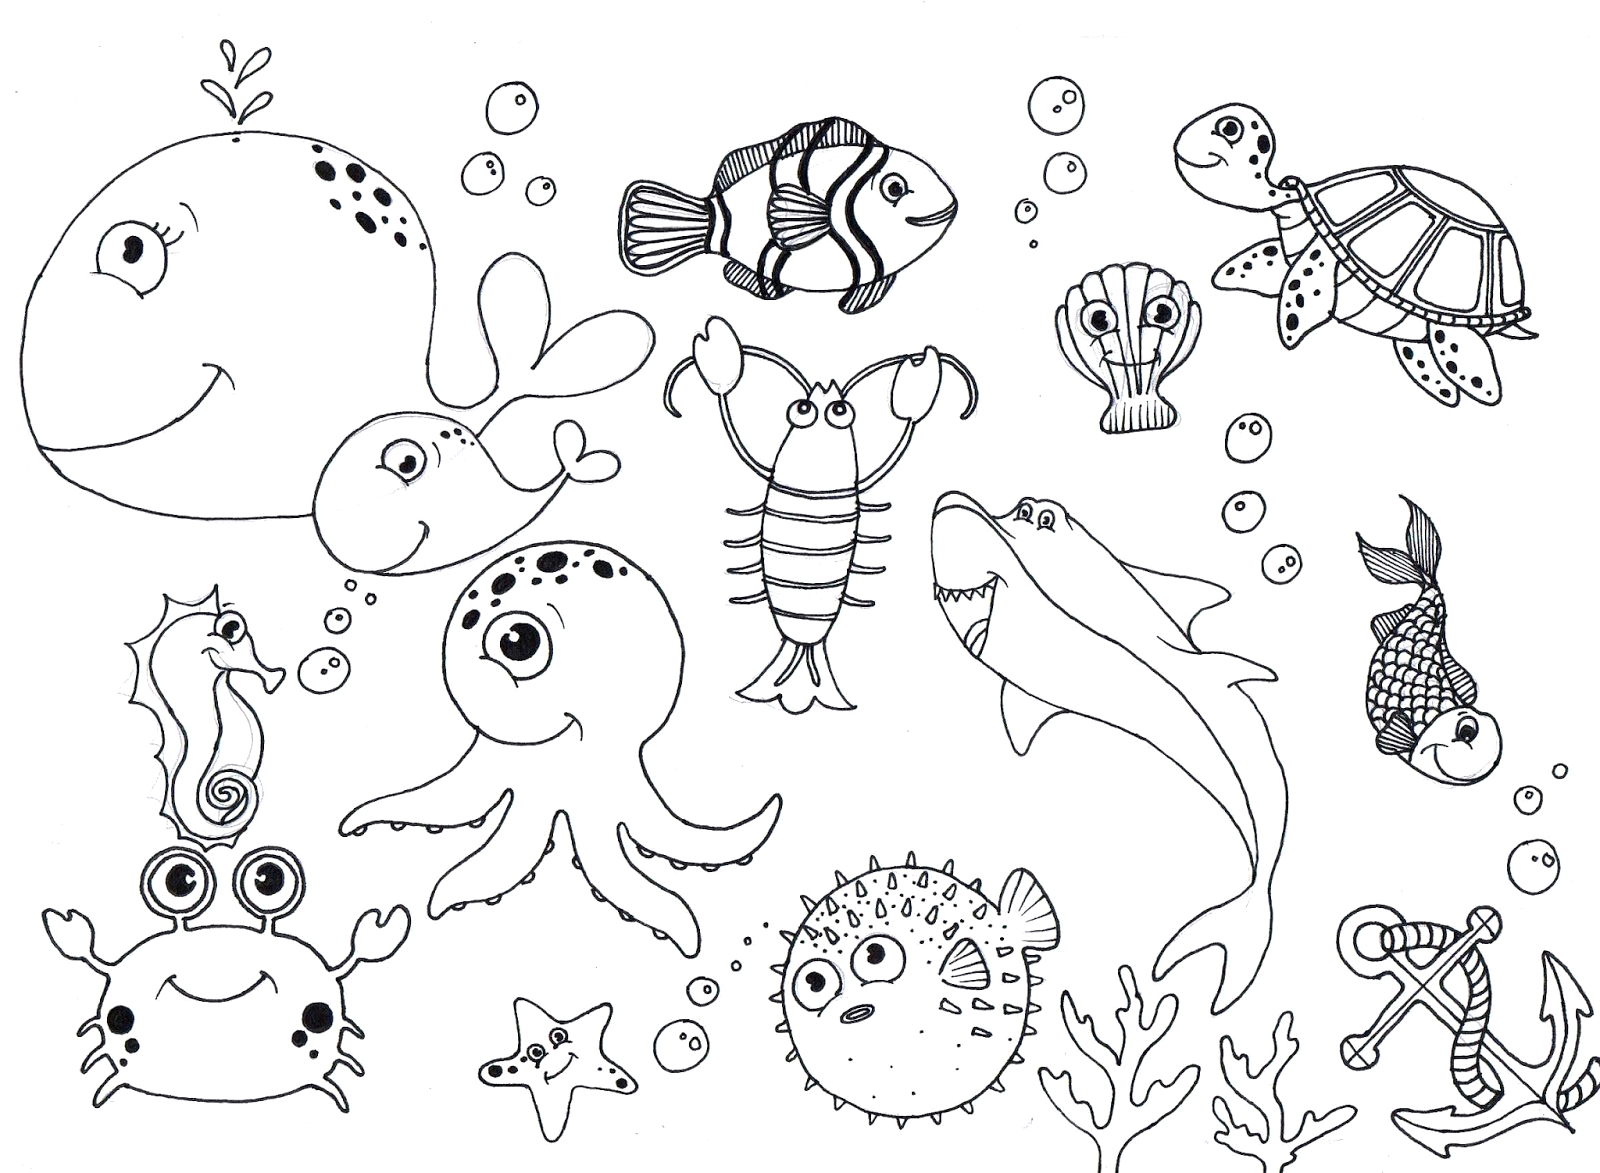 Coloring Pages Of the Ocean for Kids Free Under the Sea Coloring Pages to Print for Kids